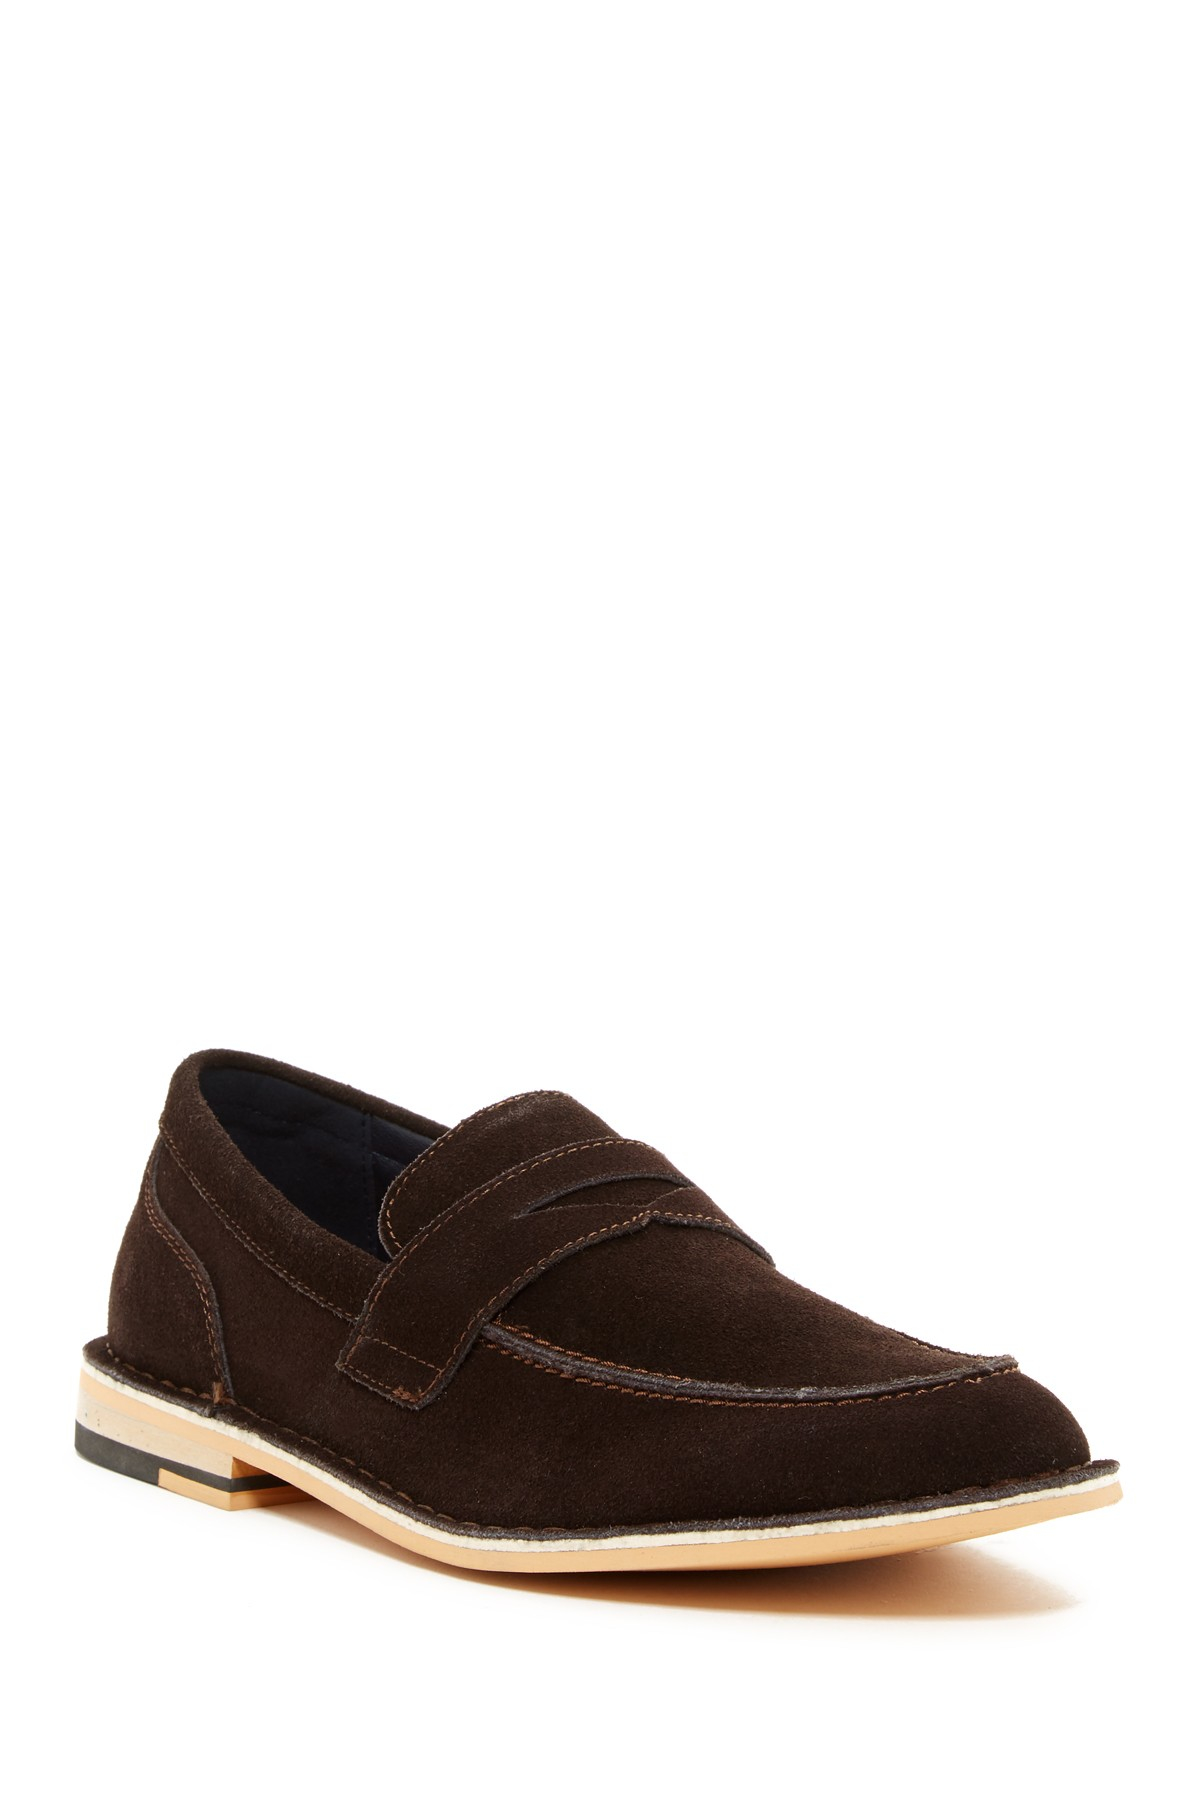 joseph abboud colin loafer in brown for lyst